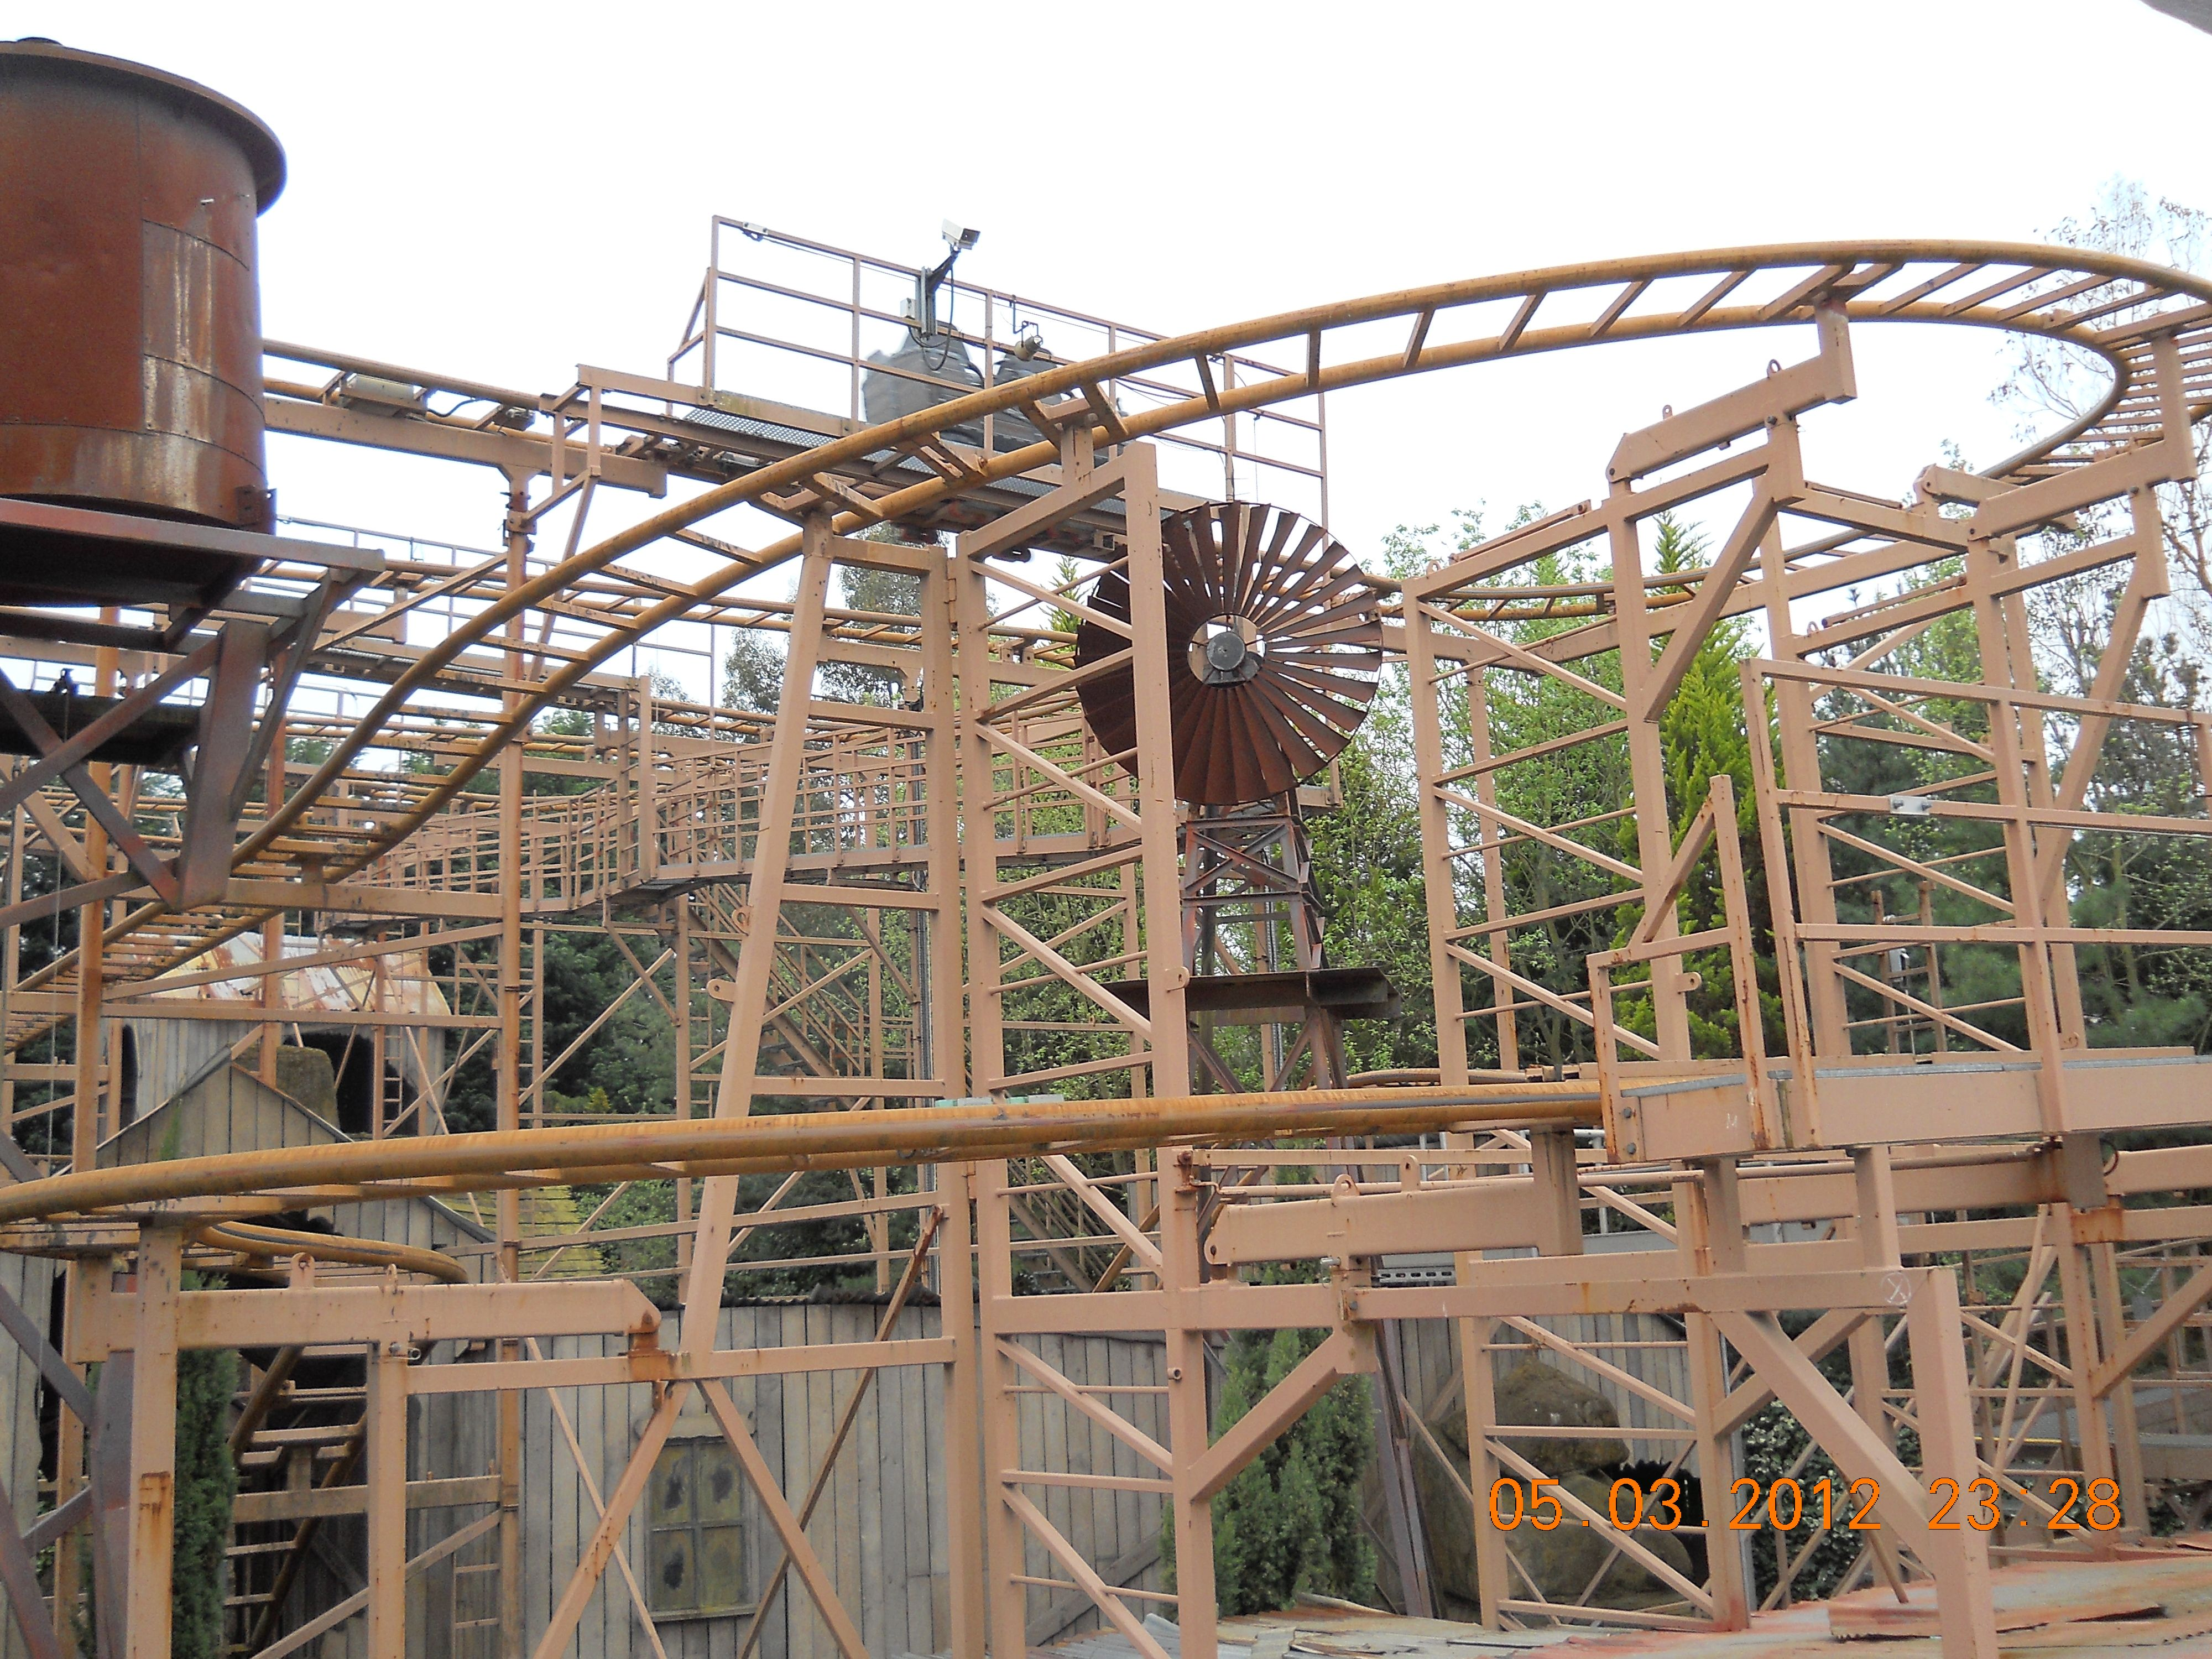 Pin by Judson Workman on Rollercoasters... check!!! | Pinterest